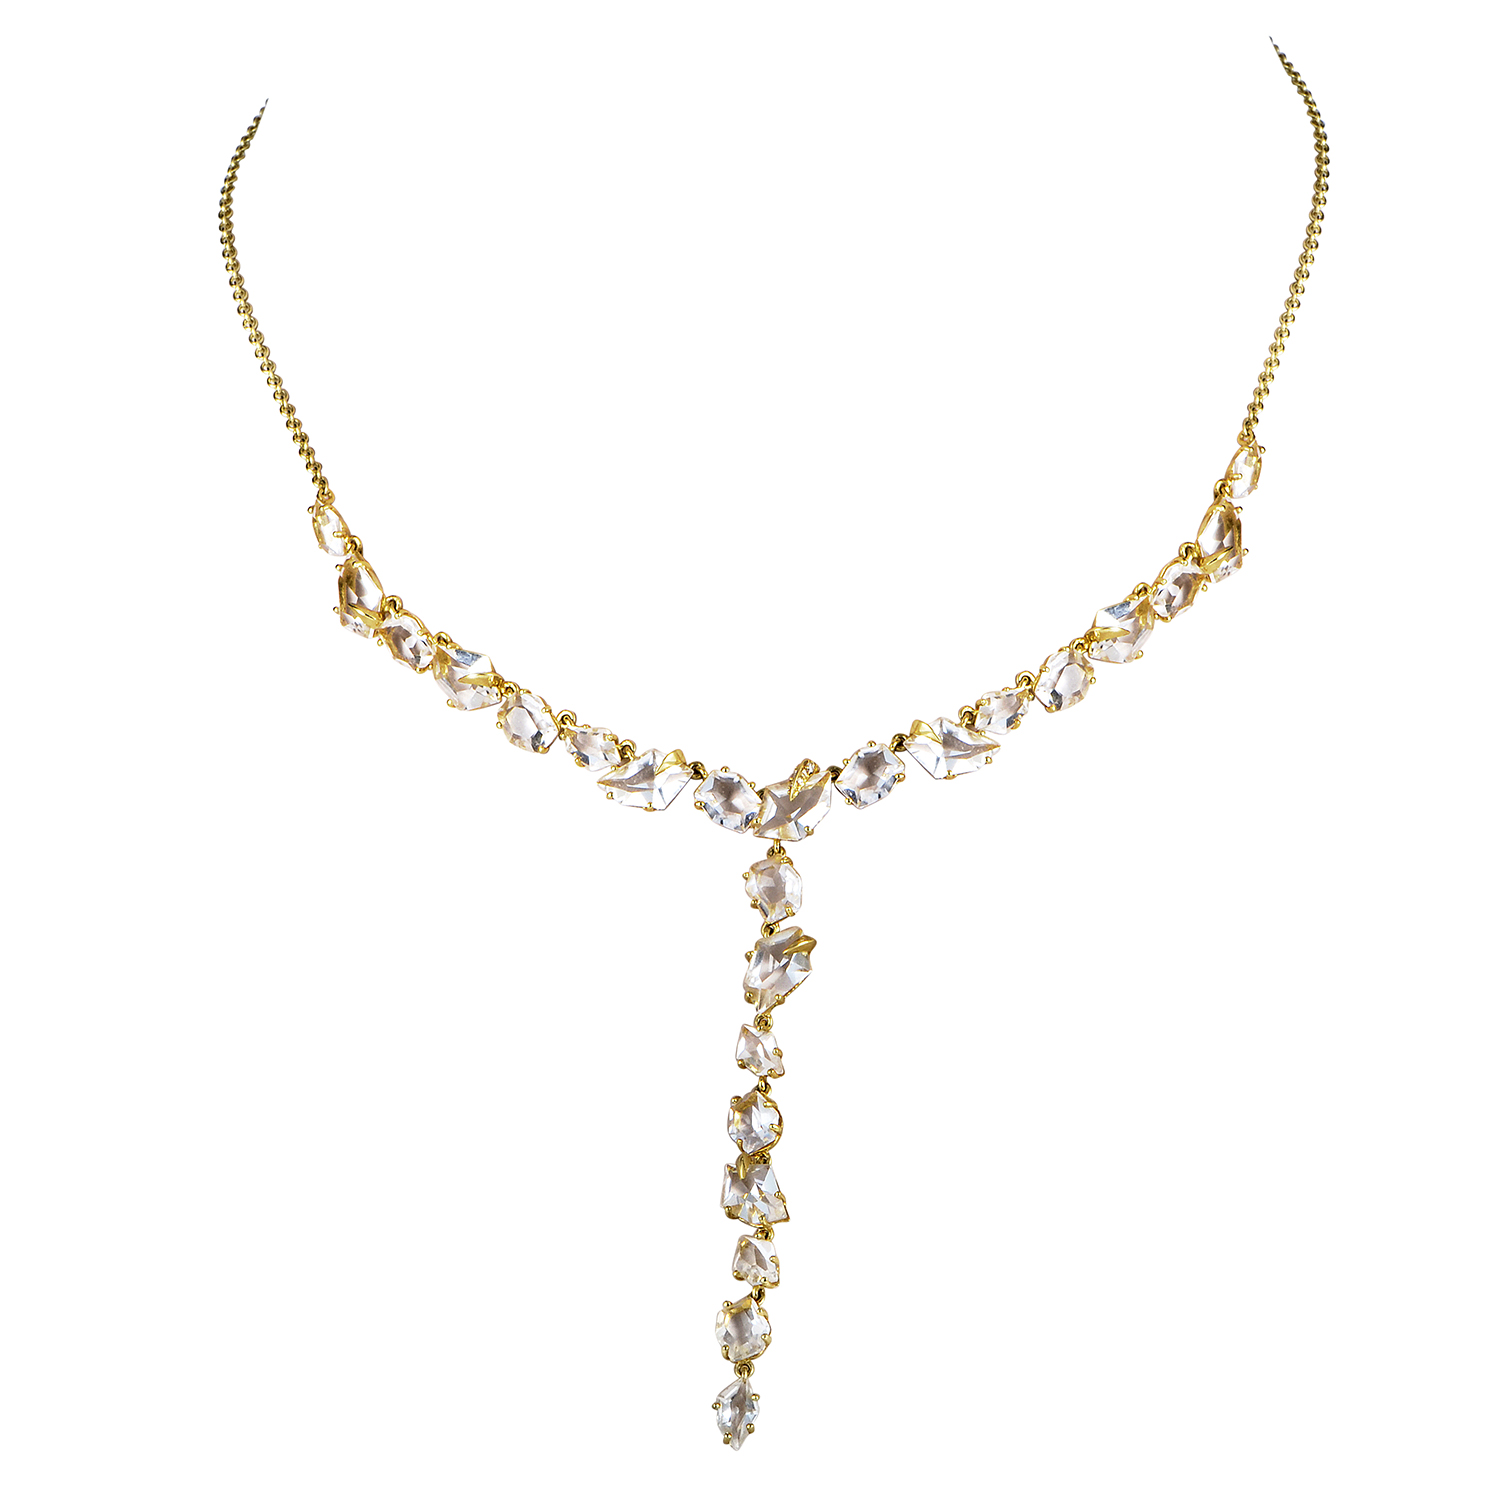 18K Yellow Gold Quartz & Diamond Necklace FN33N028